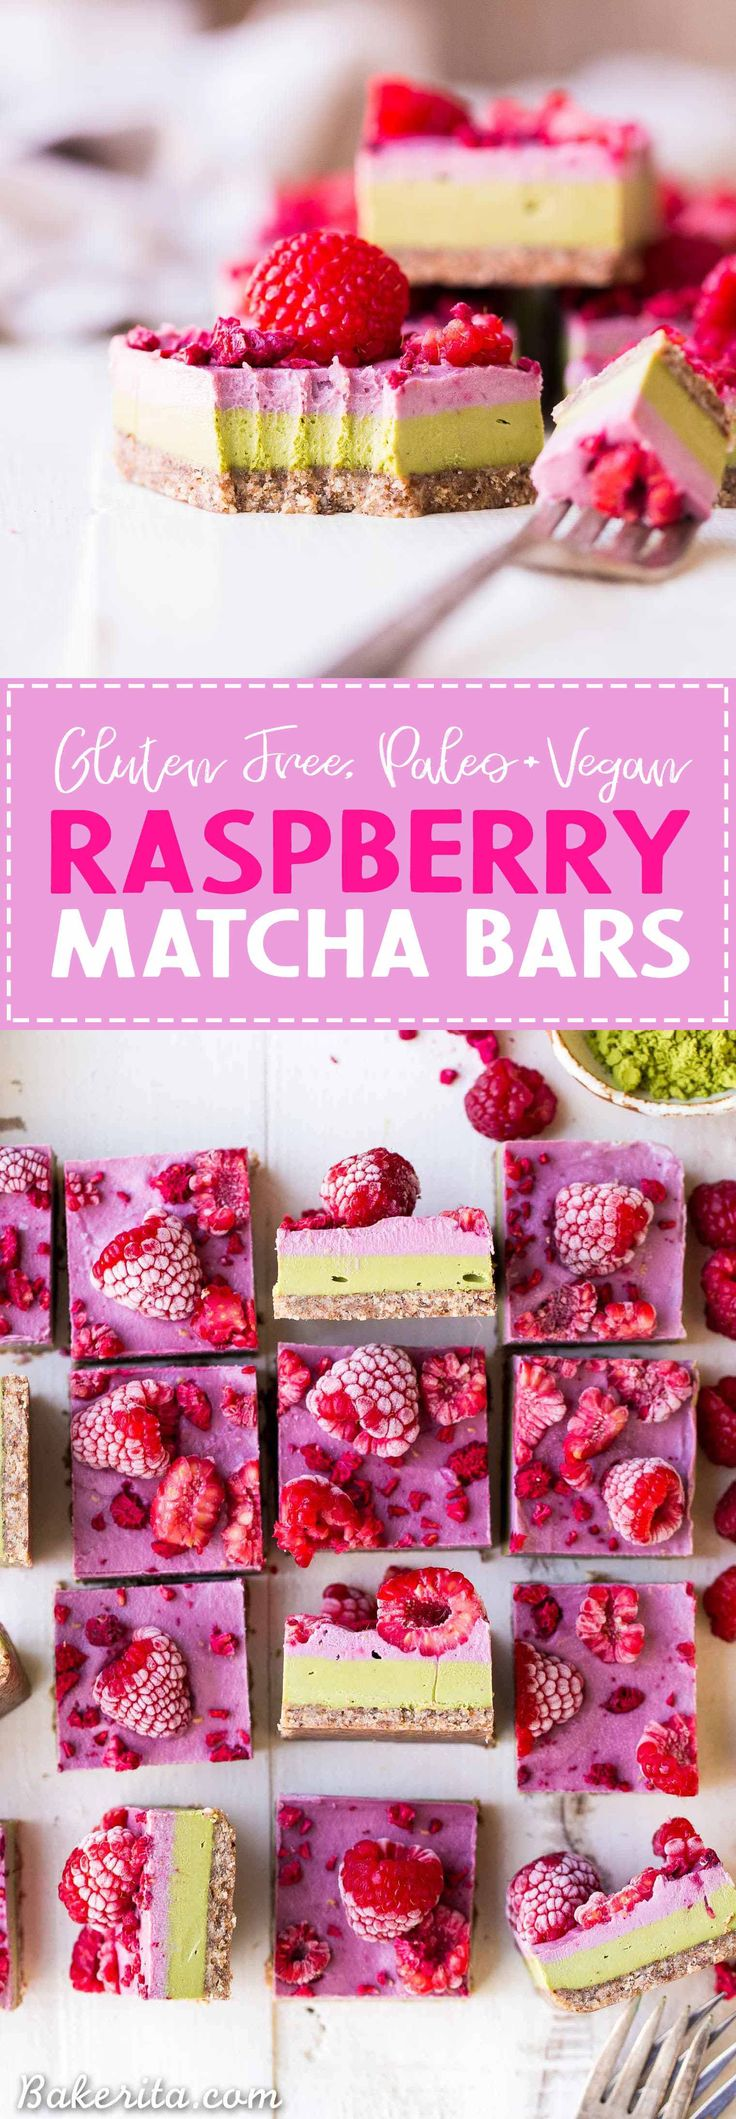 These Raspberry Matcha Bars are incredibly creamy and flavorful! The earthy green tea matcha pairs wonderfully with the tart raspberry flavor, and they certainly taste as good as they look. You're going to adore these gluten-free, paleo, and vegan raspberry matcha bars.